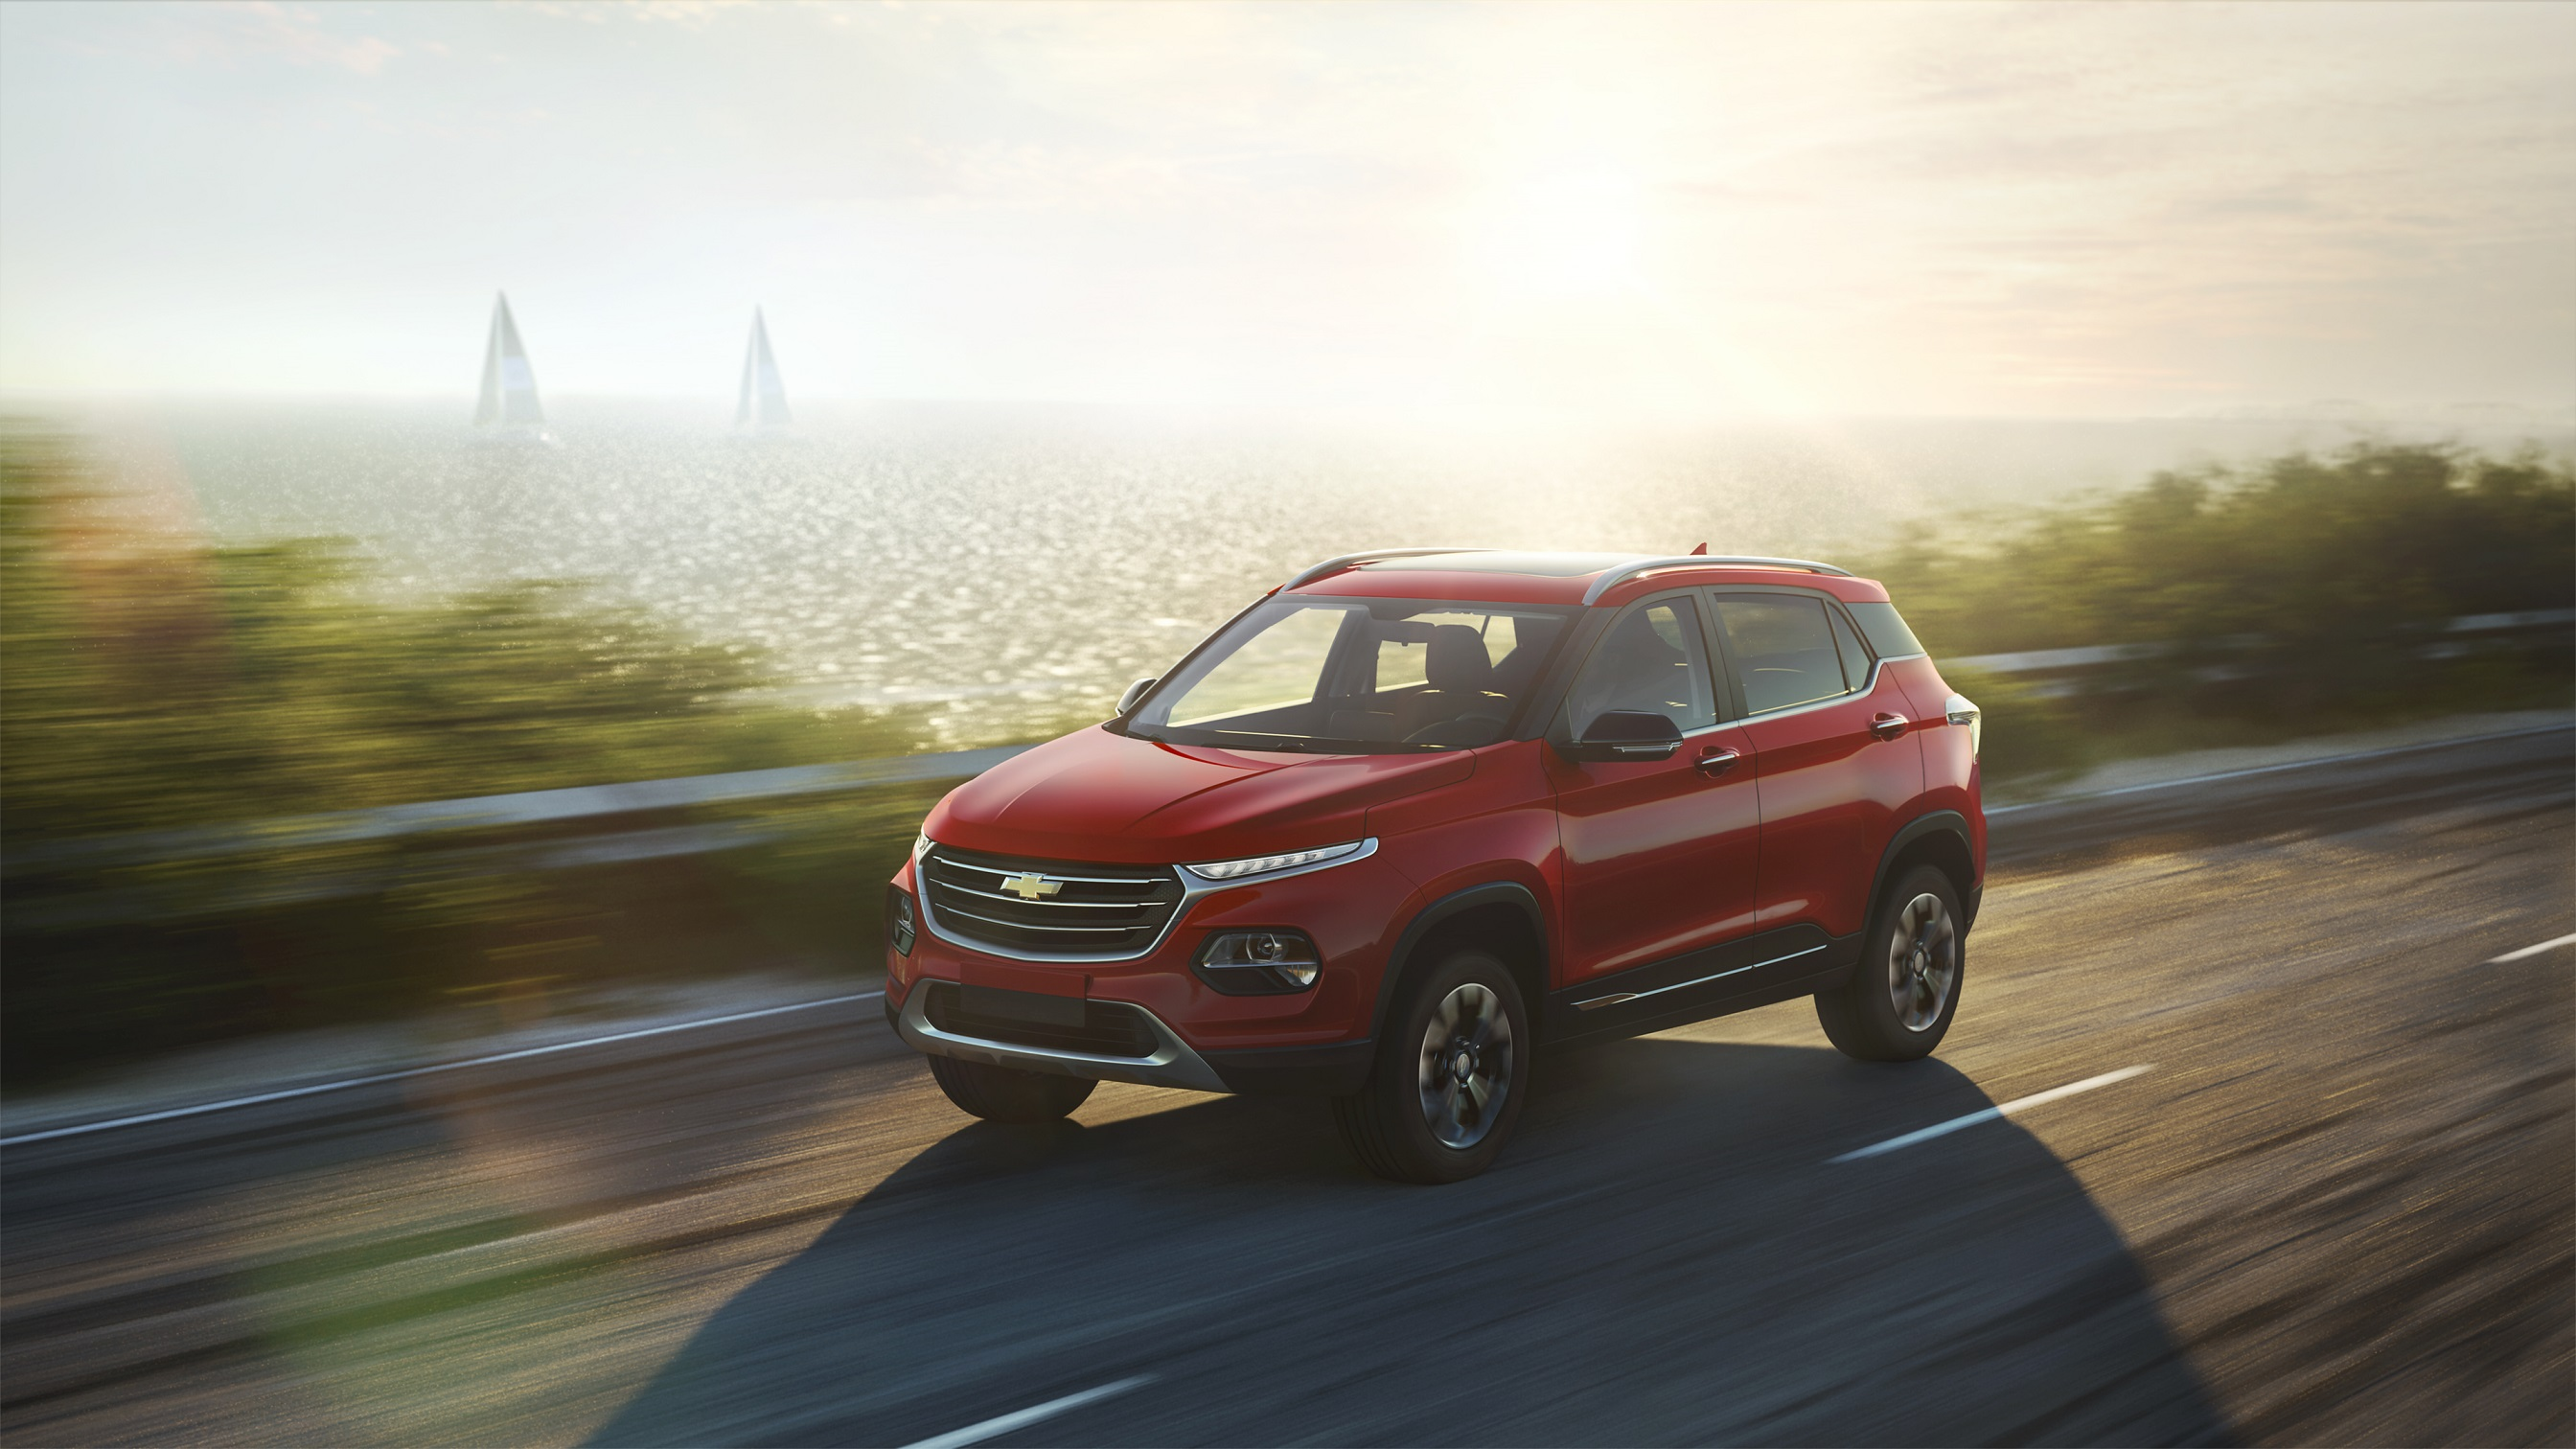 Chevrolet introduces a brand-new compact SUV to the Middle East